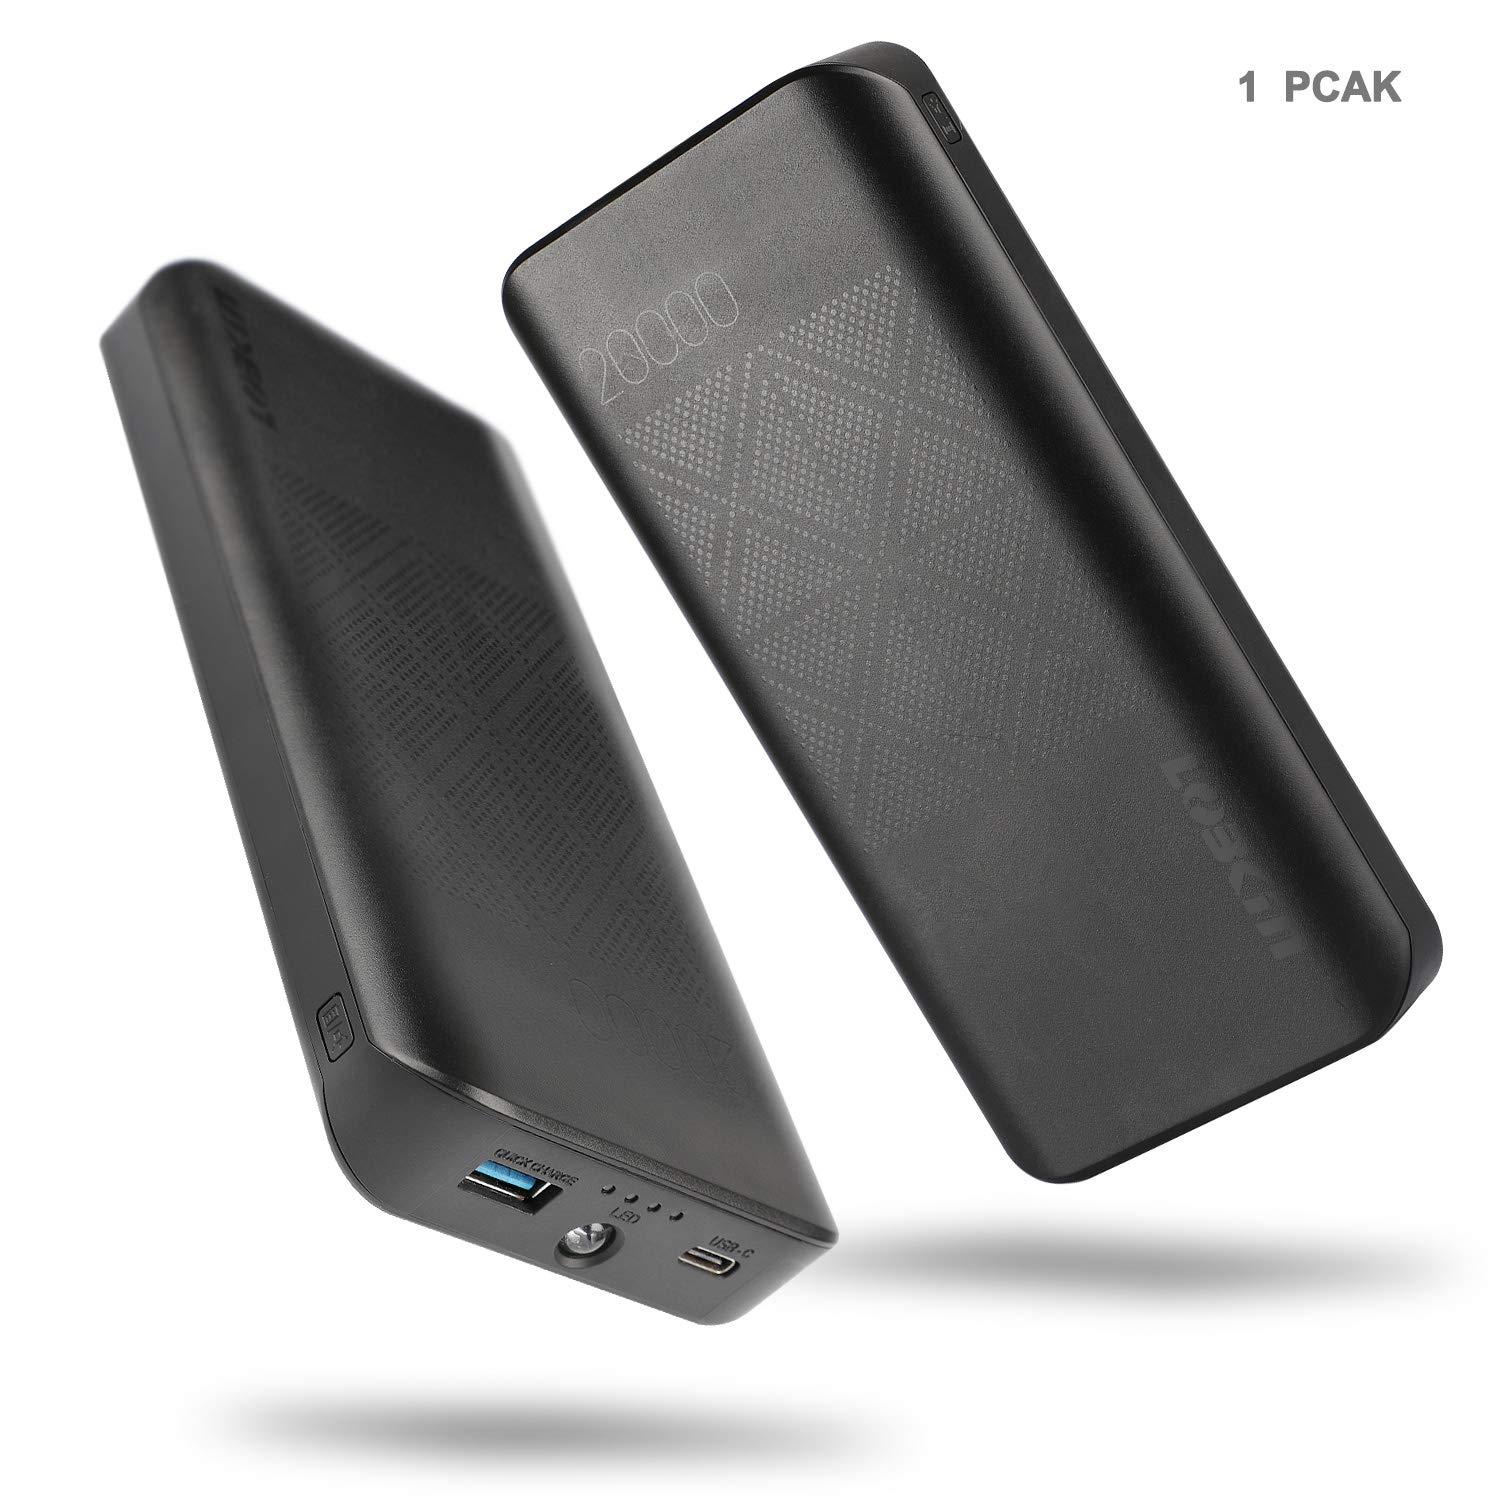 LOBKIN Power Bank 26800mAh 2 Porte 18W PD3.0&QC3.0, Caricabatterie Portatile con Ingresso Fulmine + Type C, per iPhone X/ 8/7/ 6s, iPad, Samsung S9/ S9+, Tablets ECC